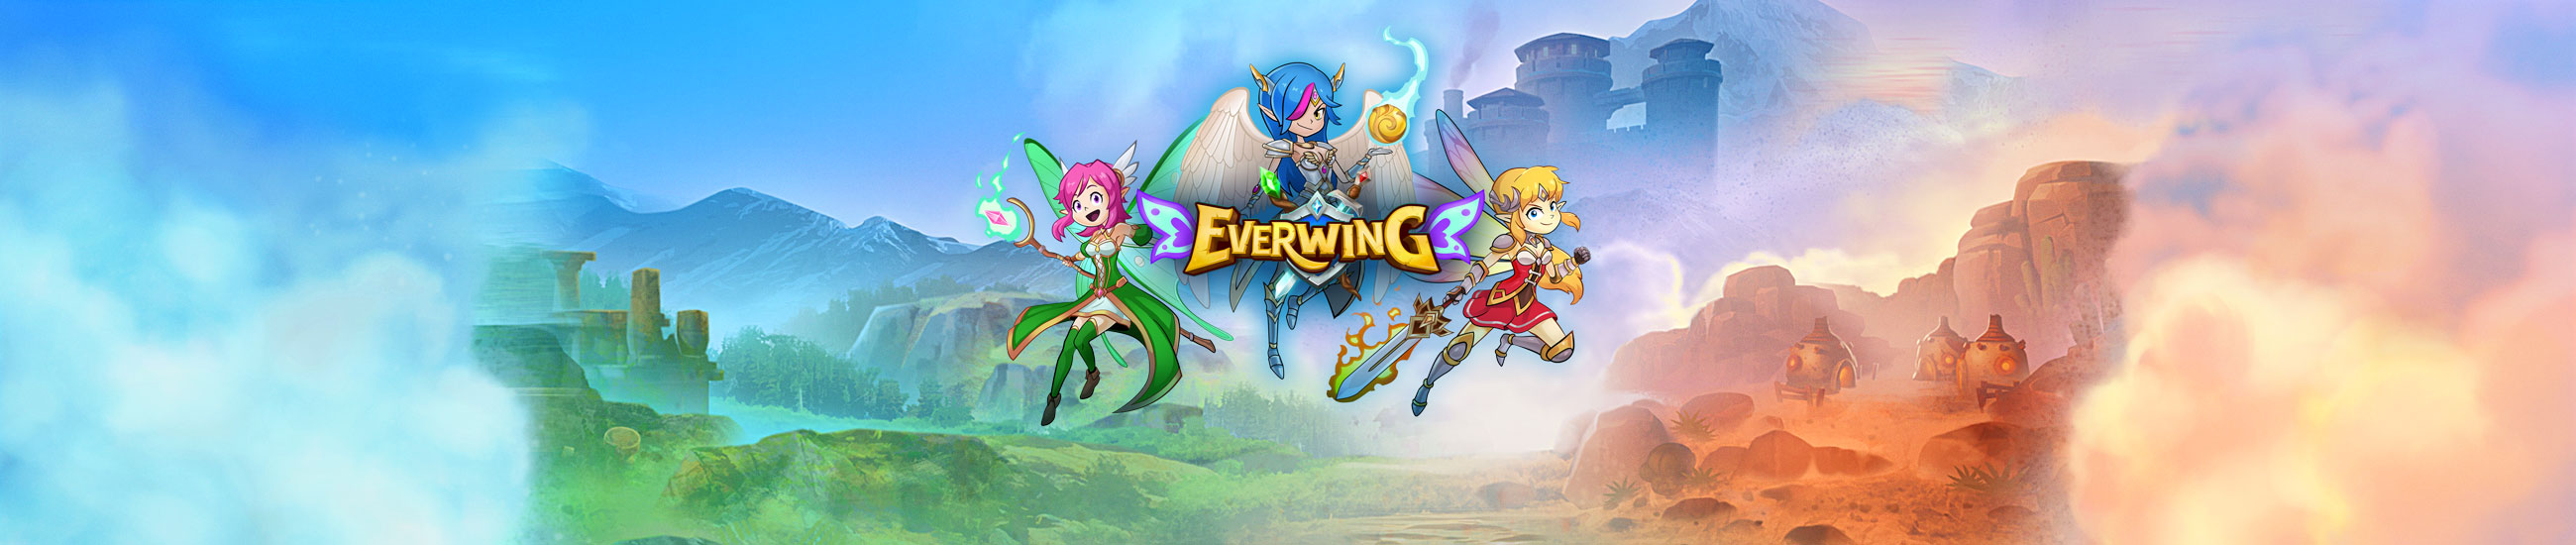 EverWing – Tap to play, instantly!